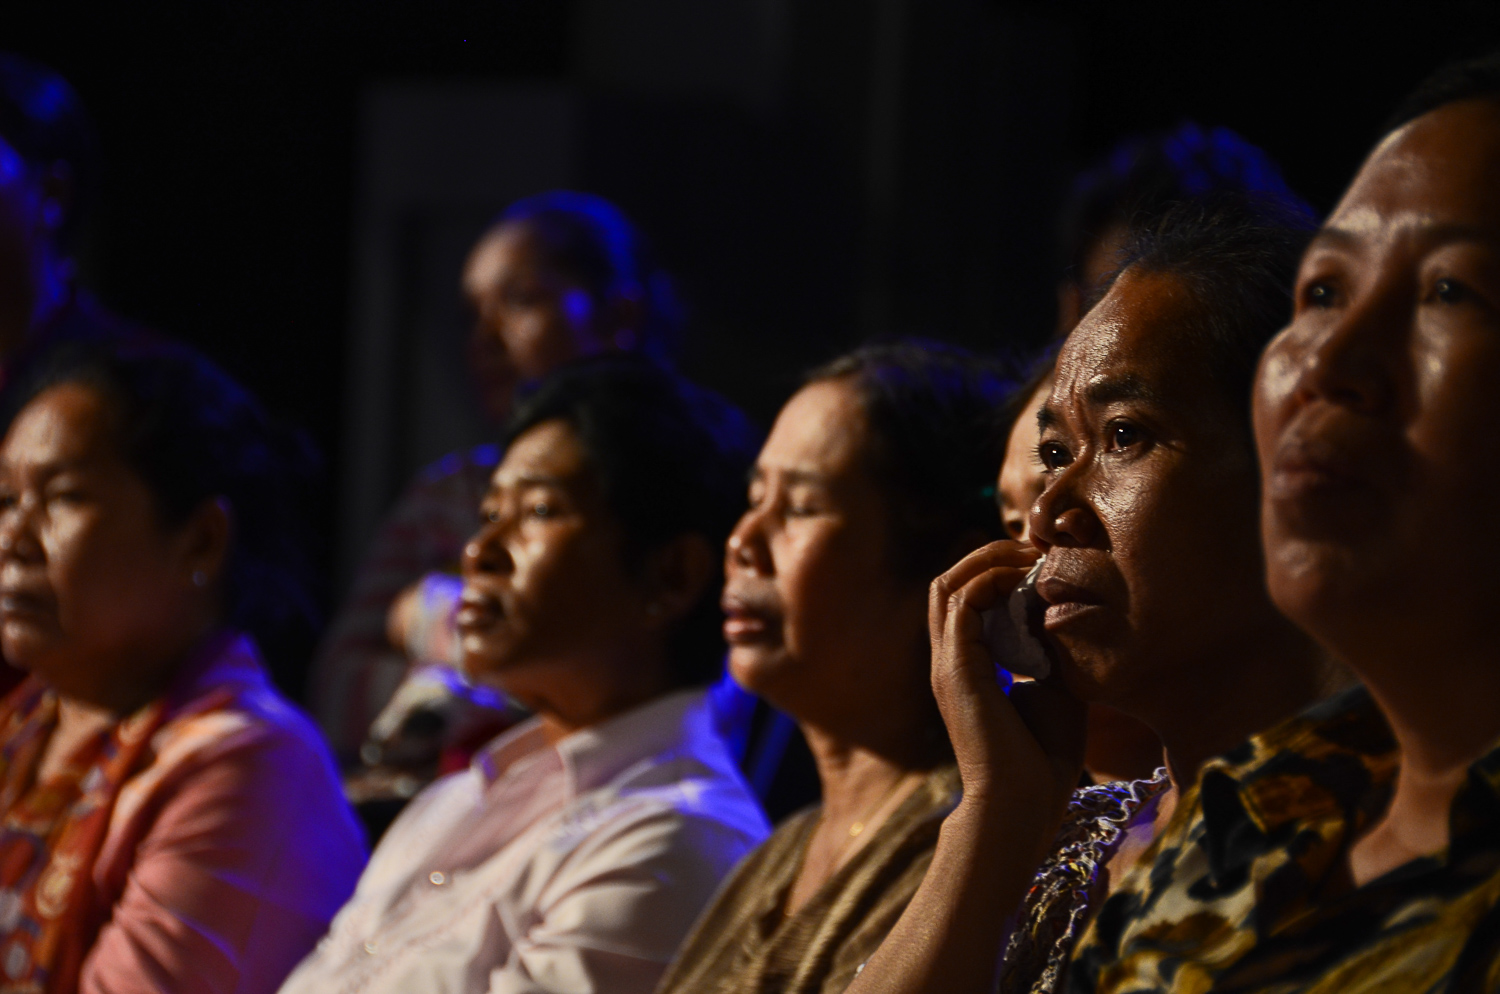 Audience members watch a taping of the Cambodian reality television show, 'It's Not a Dream.' The show re-unites families separated by the Khmer Rouge. Many among the audience have been through similar experiences.